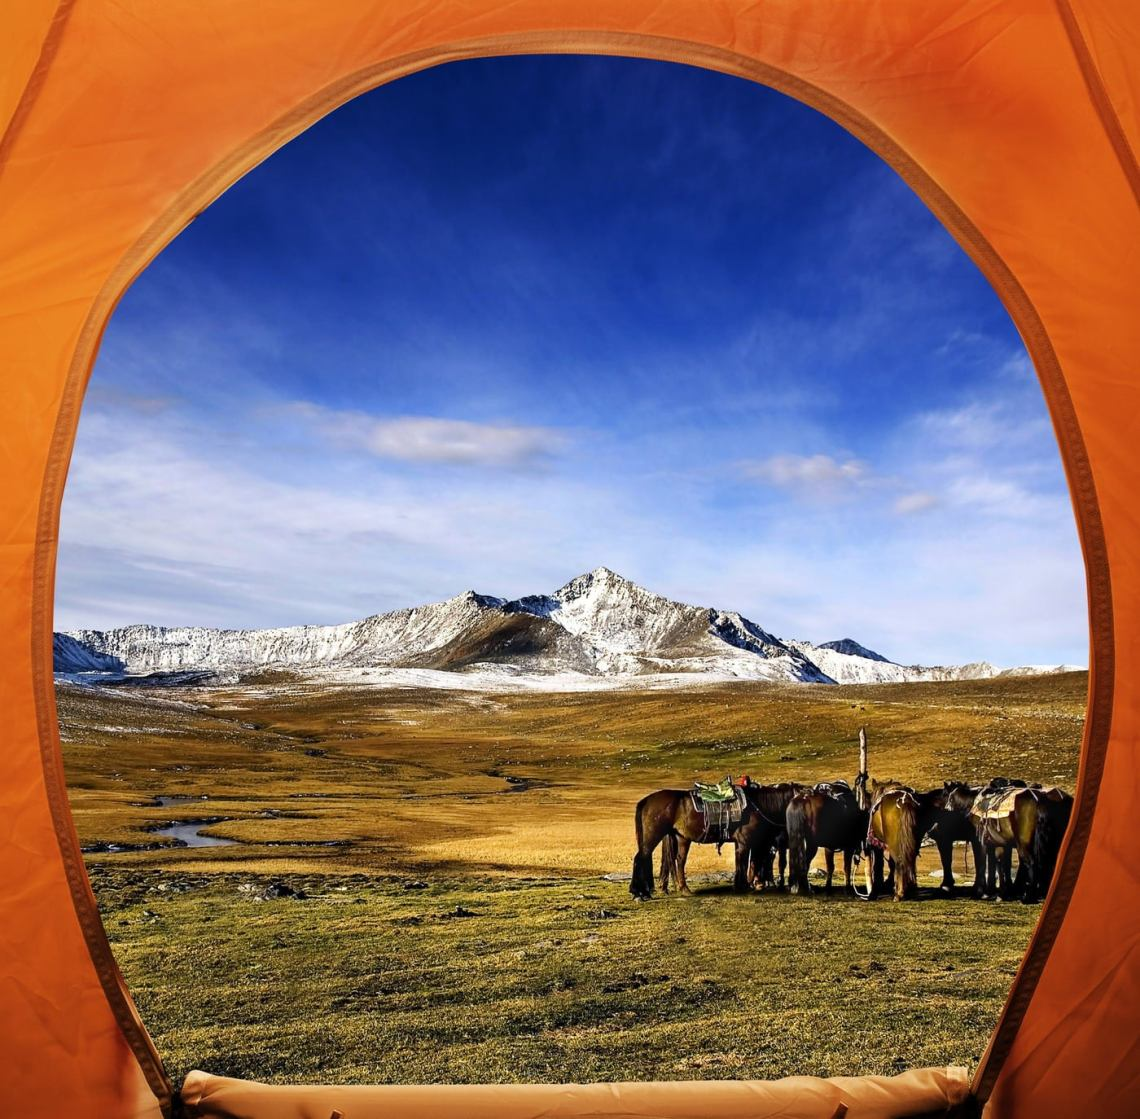 View from inside orange tent, facing into an alpine field full of grazing horses.